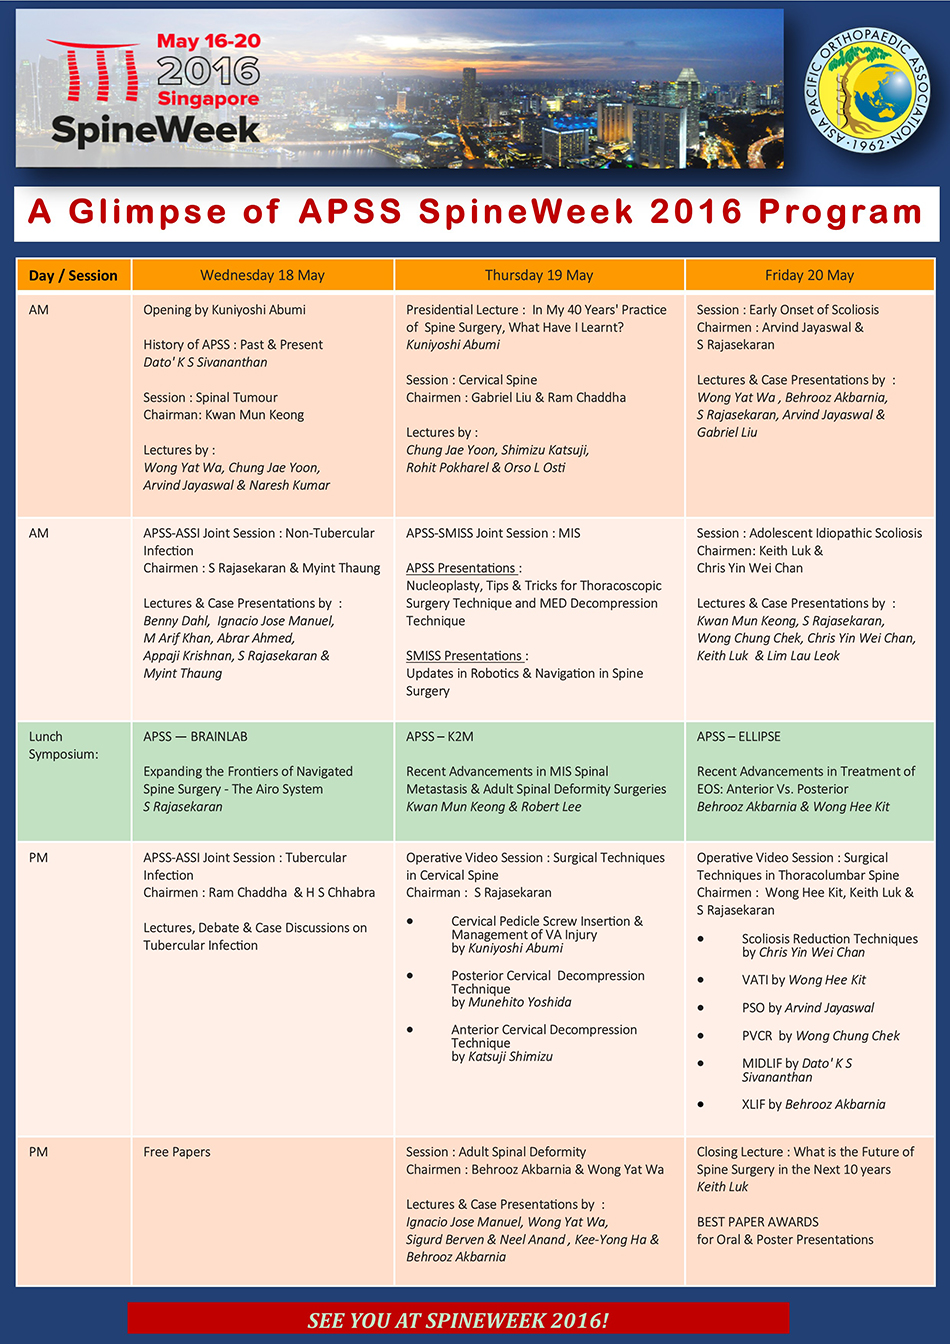 APSS Scientific Programme Daily Highlights